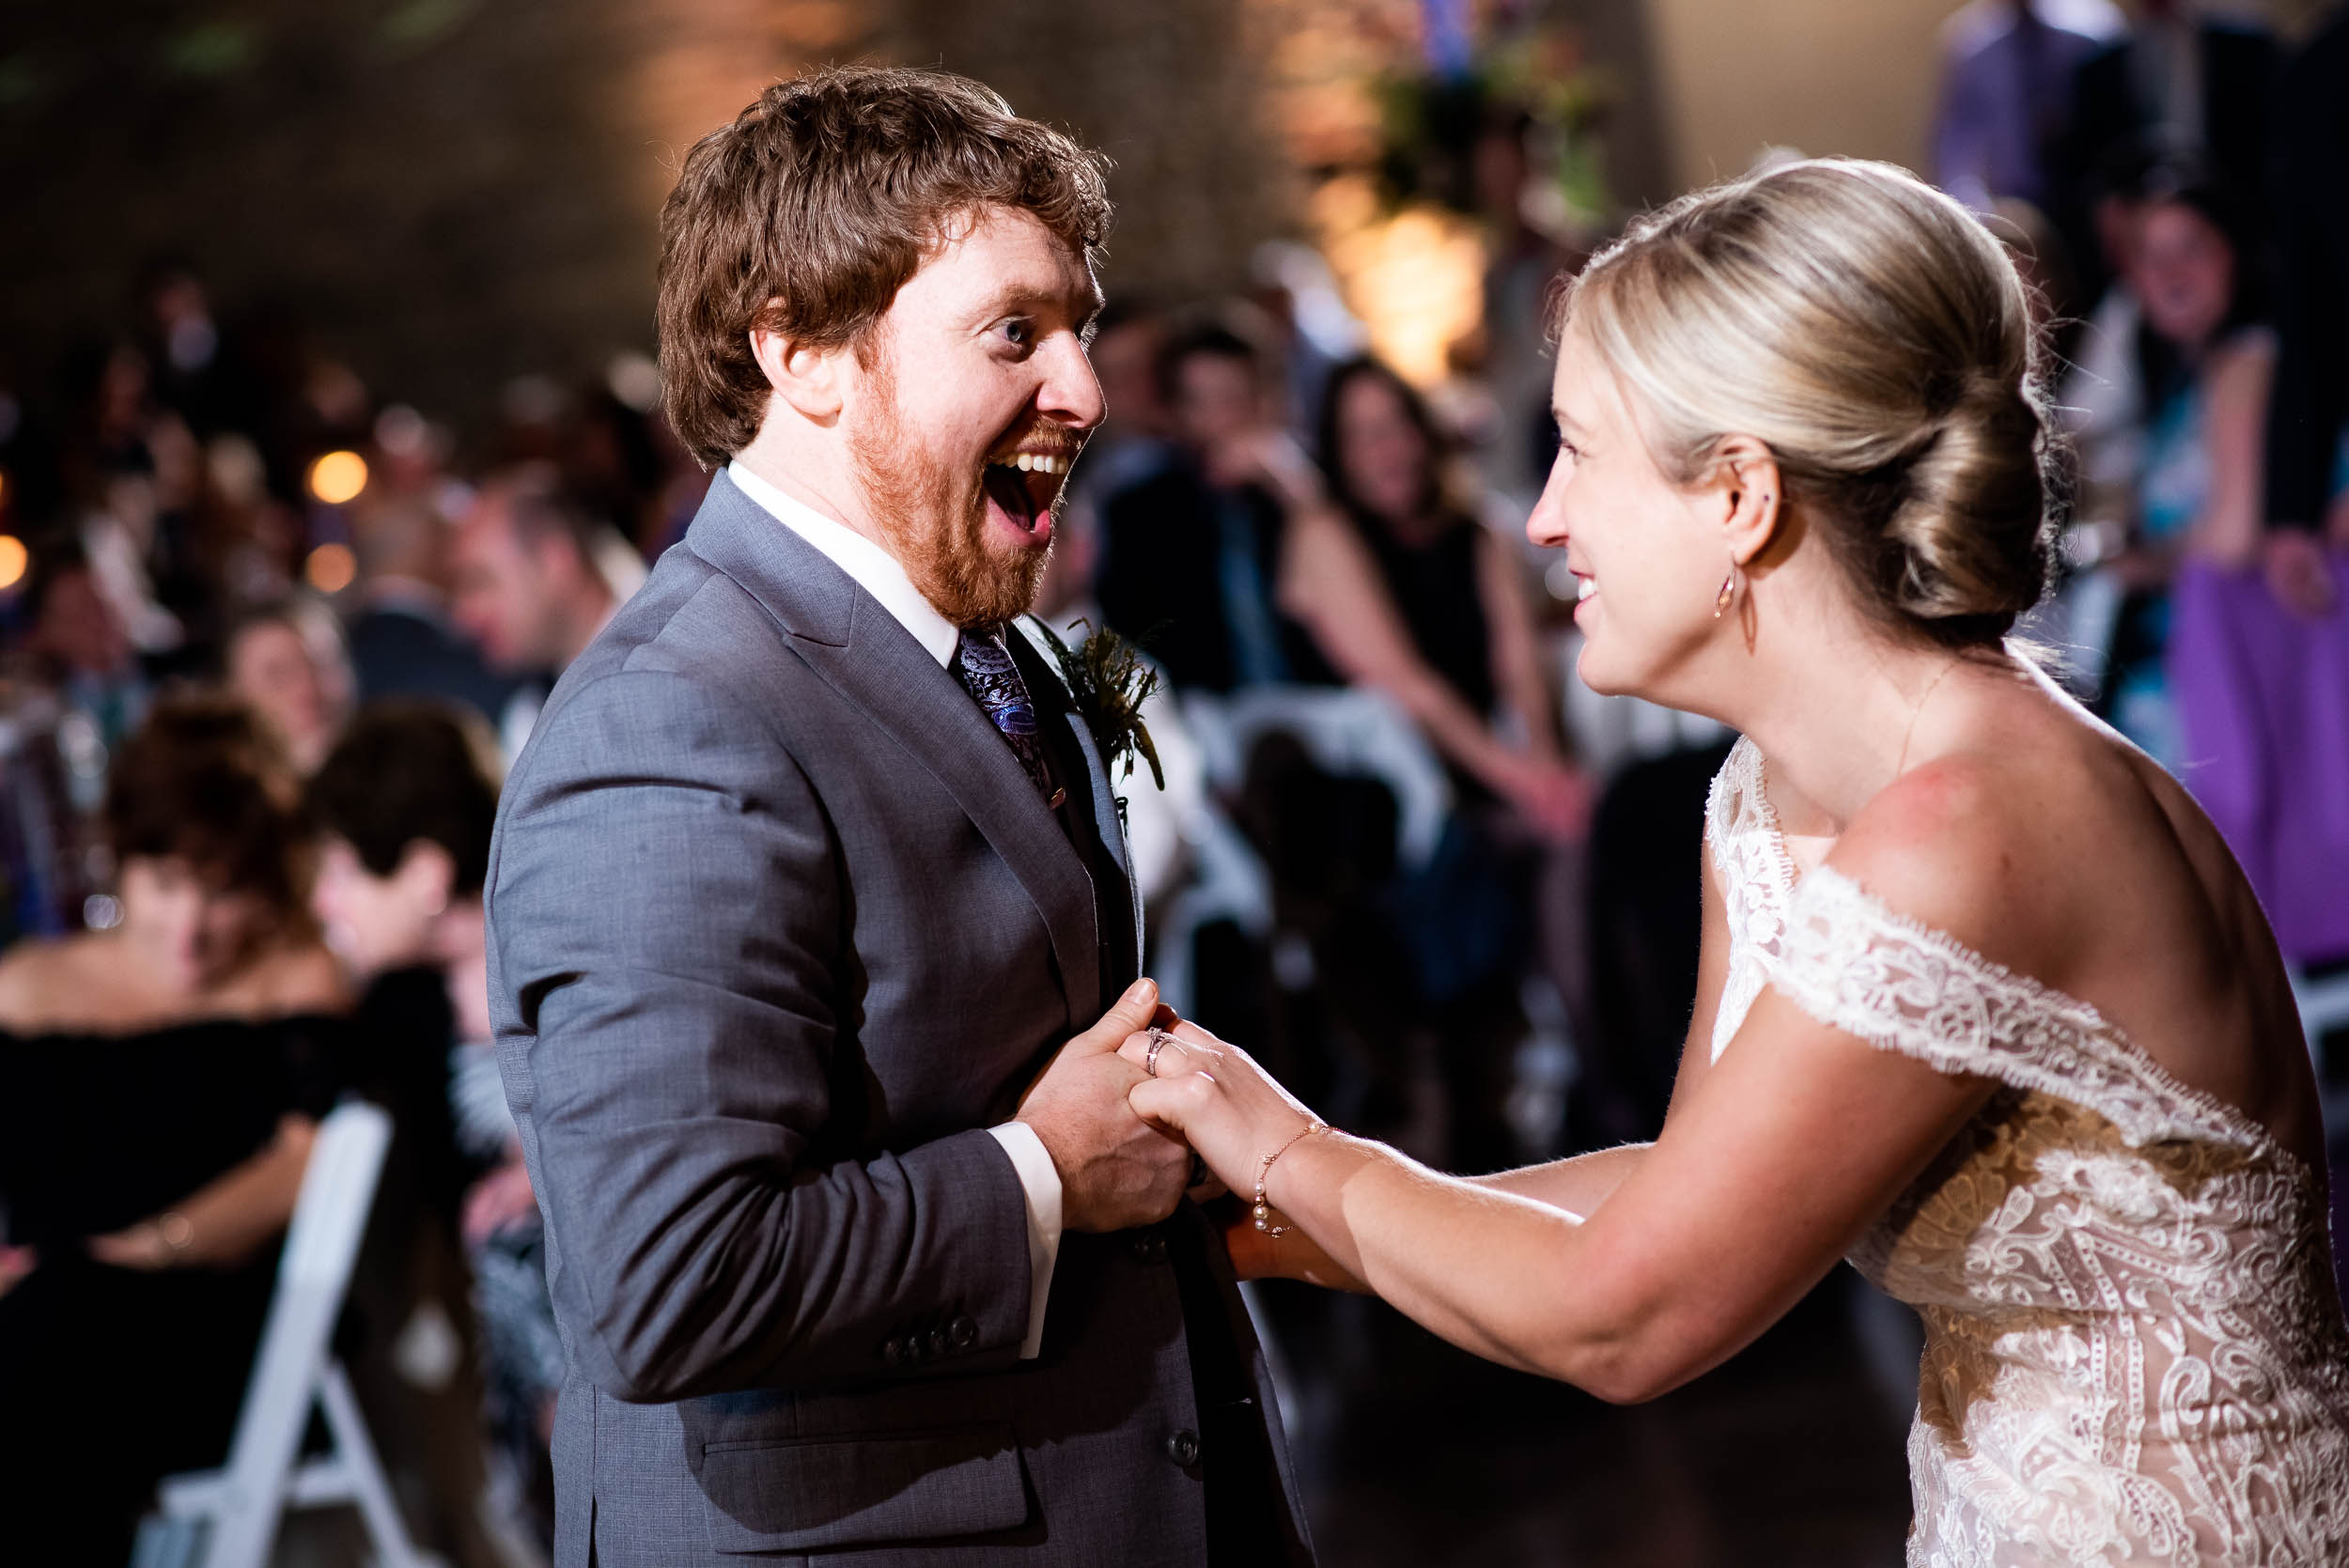 Fun wedding photos: Modern industrial Chicago wedding inside Prairie Street Brewhouse captured by J. Brown Photography. Find more wedding ideas at jbrownphotography.com!